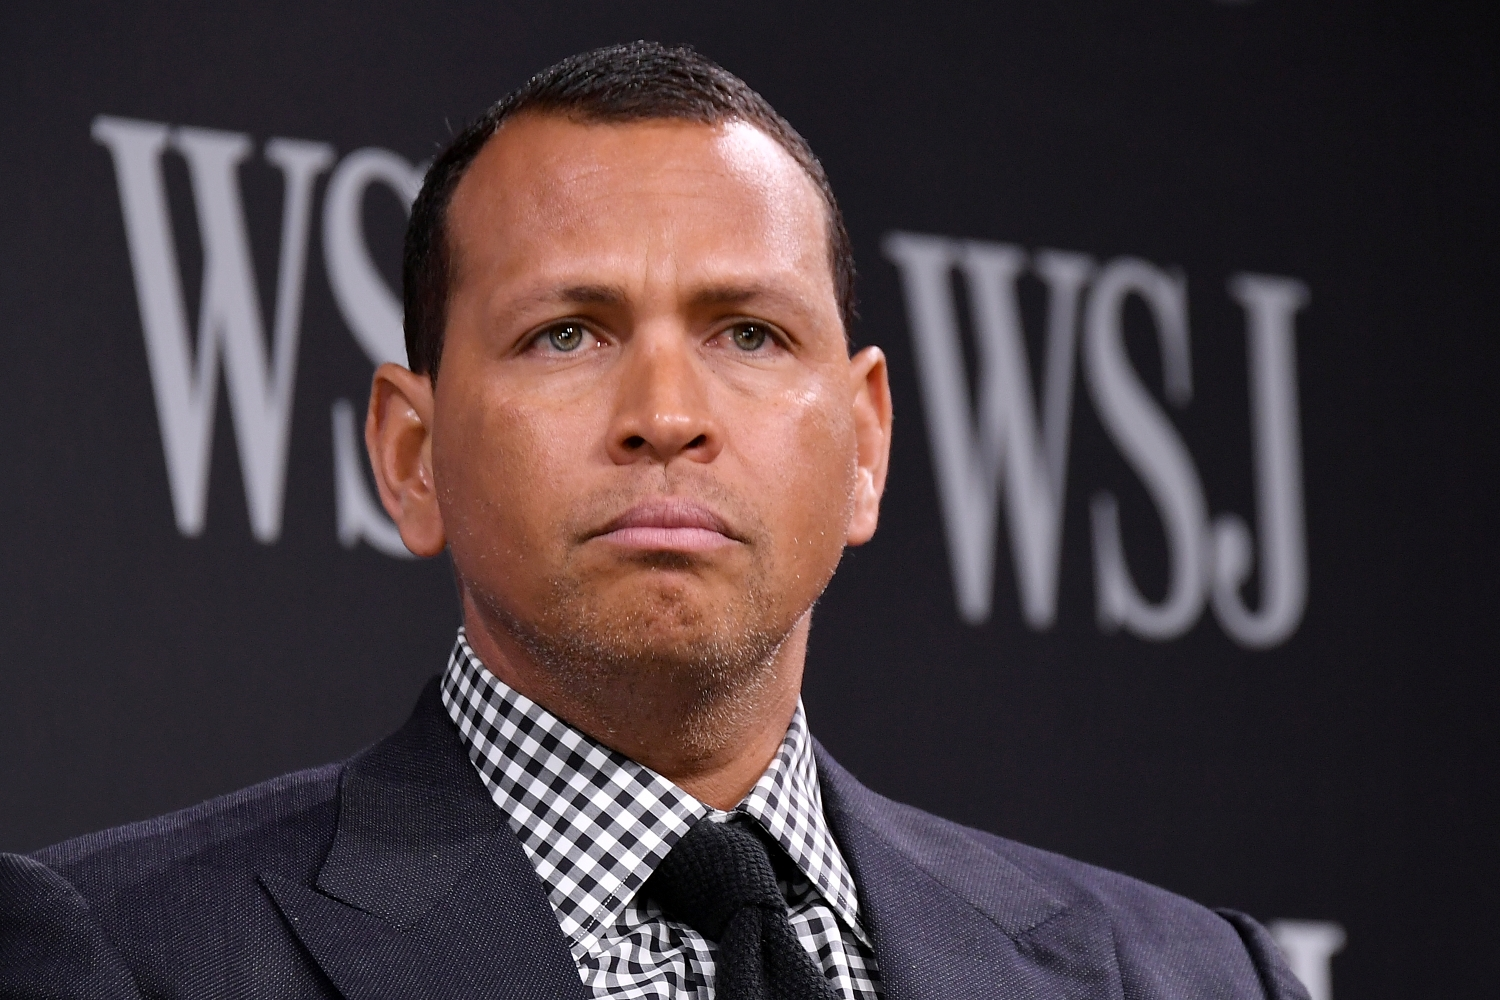 Sports commentator and former professional baseball player Alex Rodriguez takes part in a panel during WSJ's The Future of Everything Festival at Spring Studios on May 8, 2018.